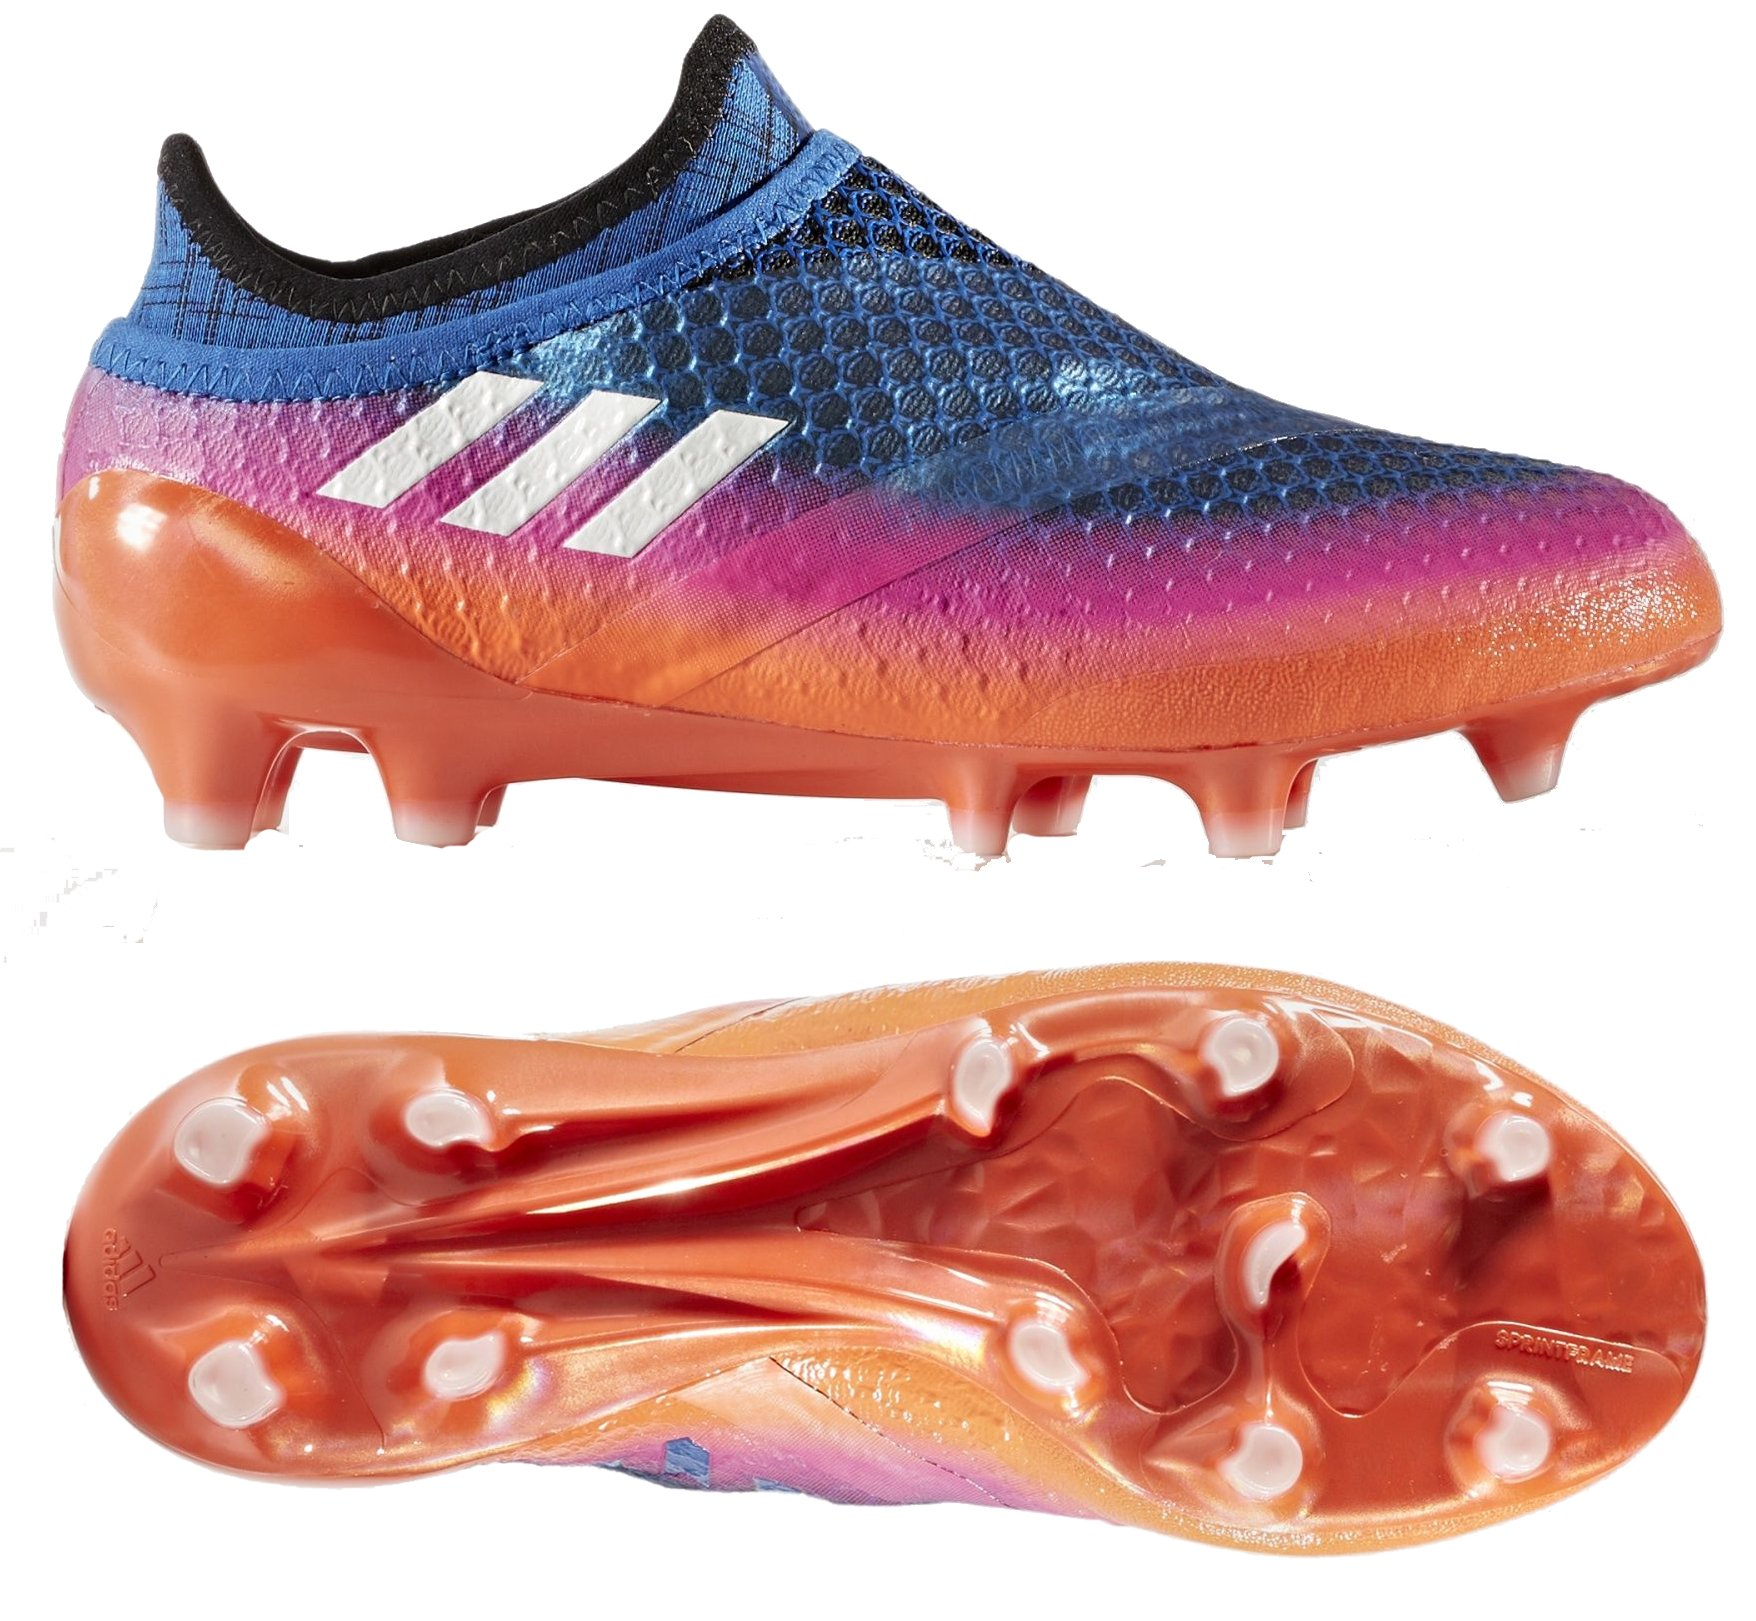 adidas Youth Soccer Messi 16+ Pureagility Firm Ground Cleats, 5.0 D(M) US, Blue / Running White / Black